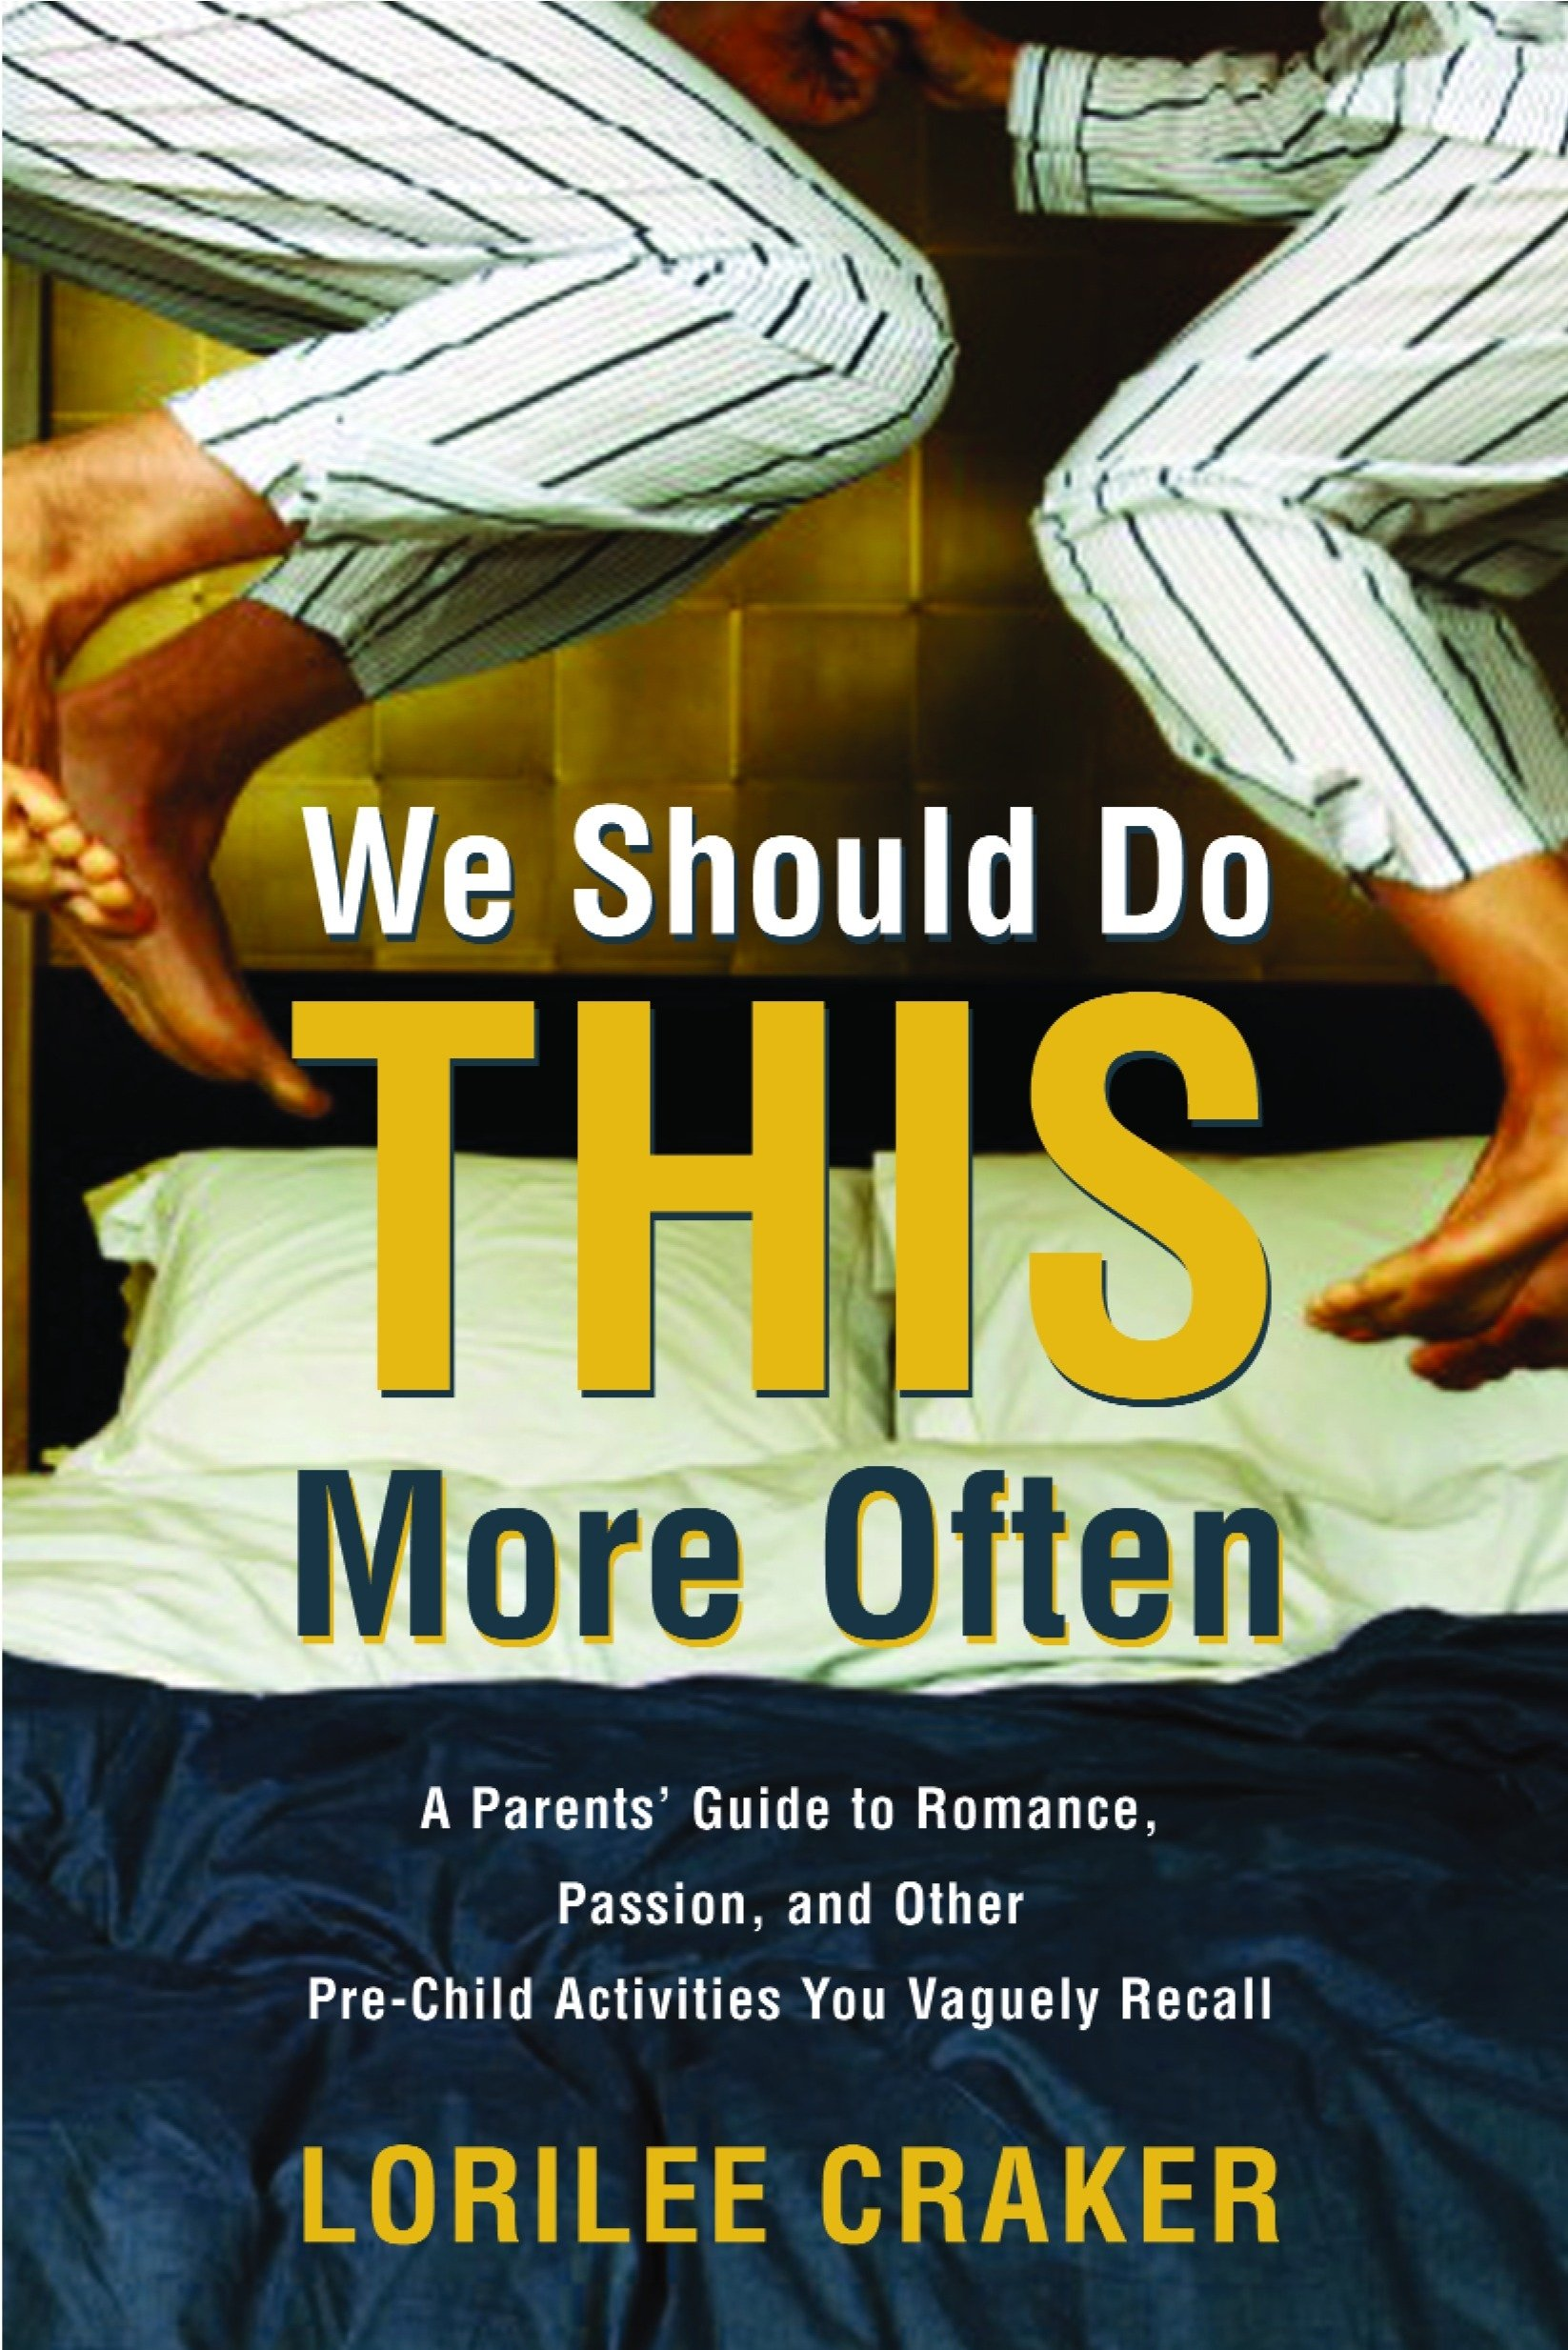 We Should Do This More Often A Parents' Guide to Romance, Passion ...